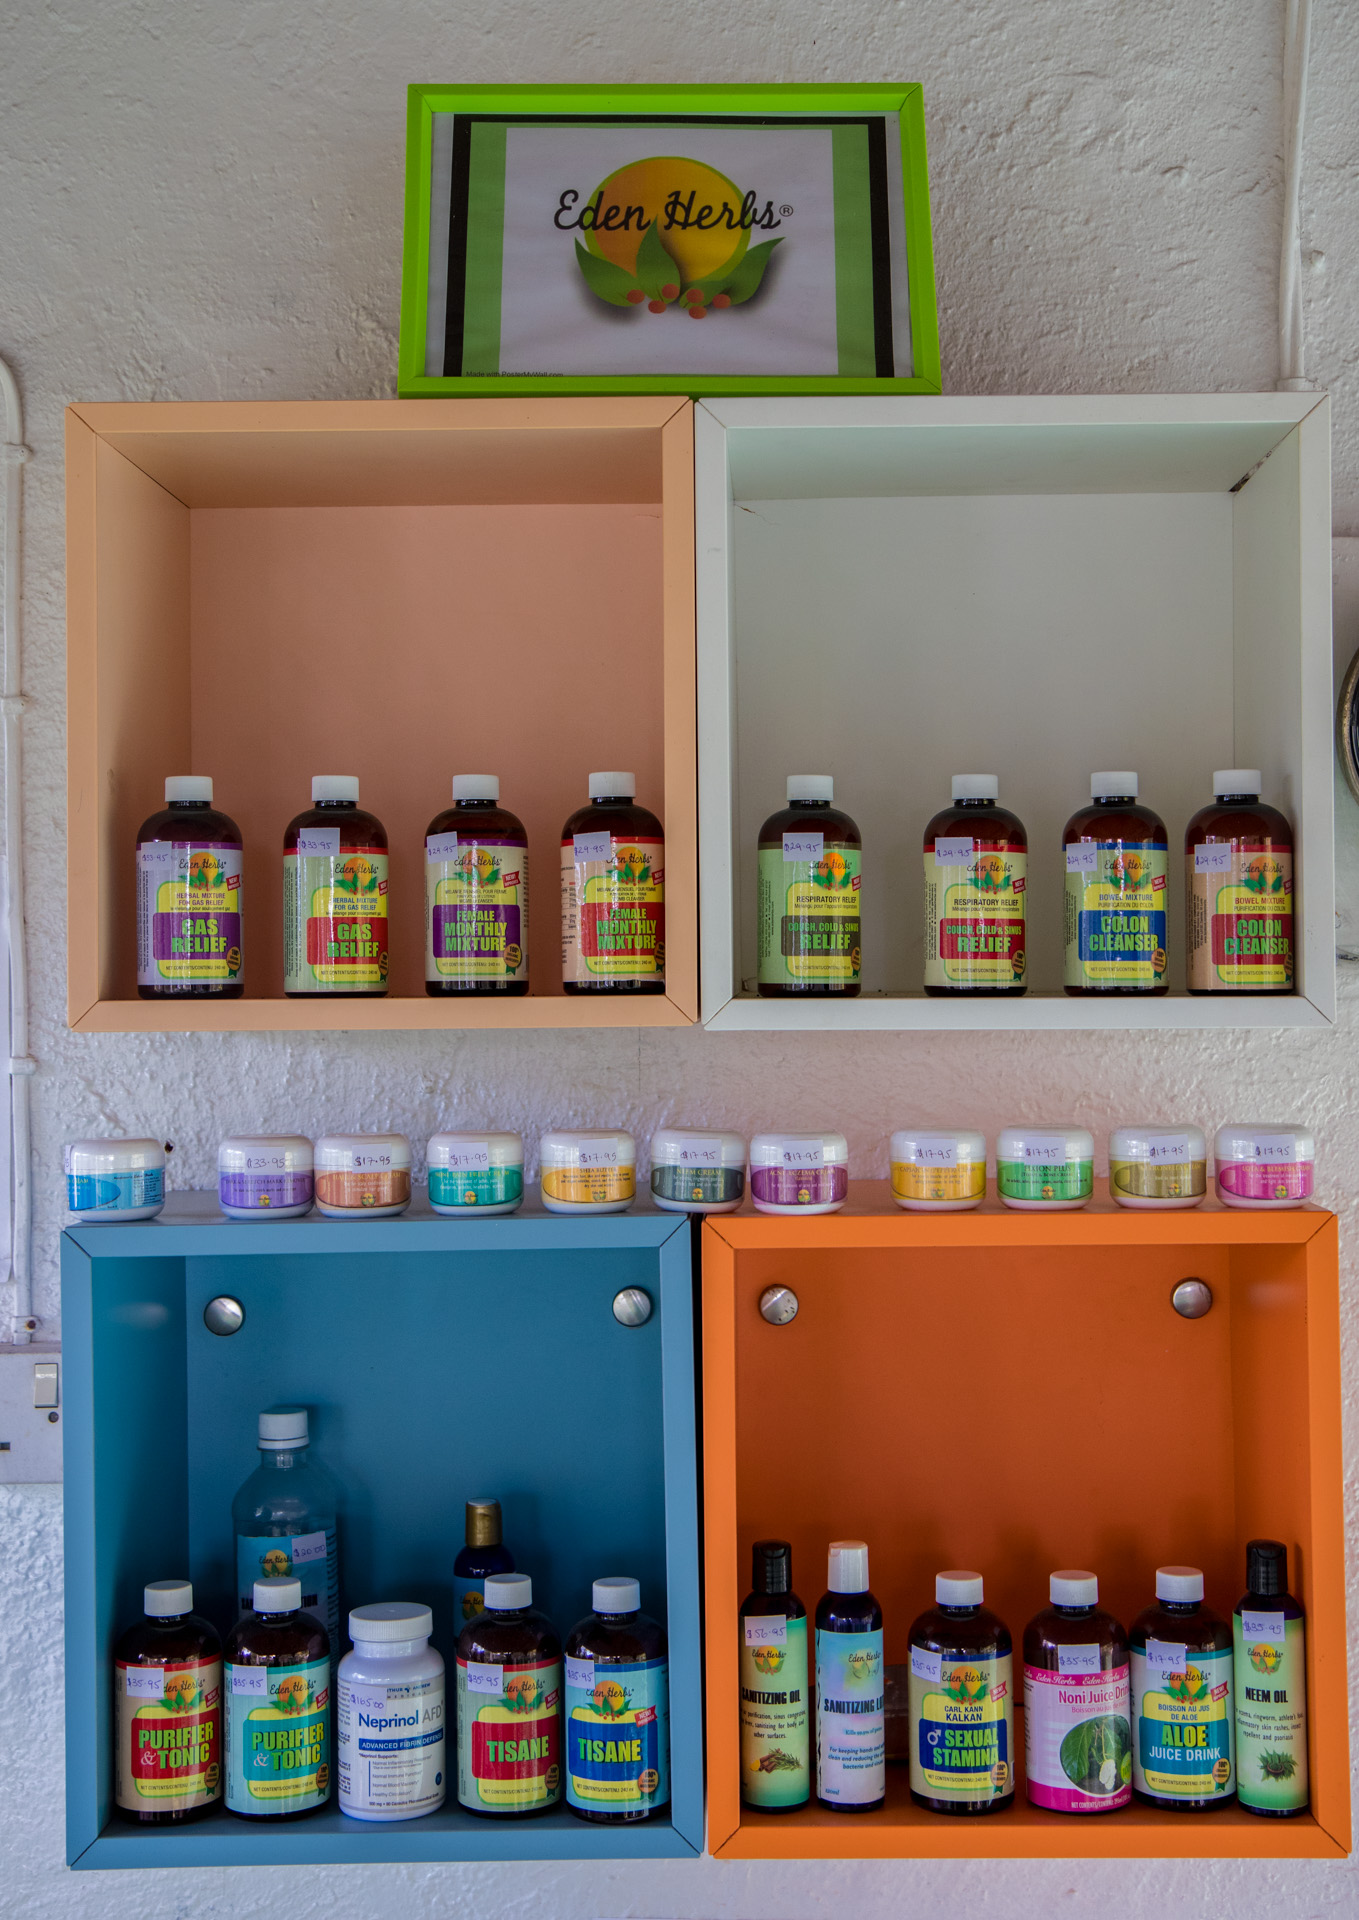 Eden Herbs Product Display Shelf